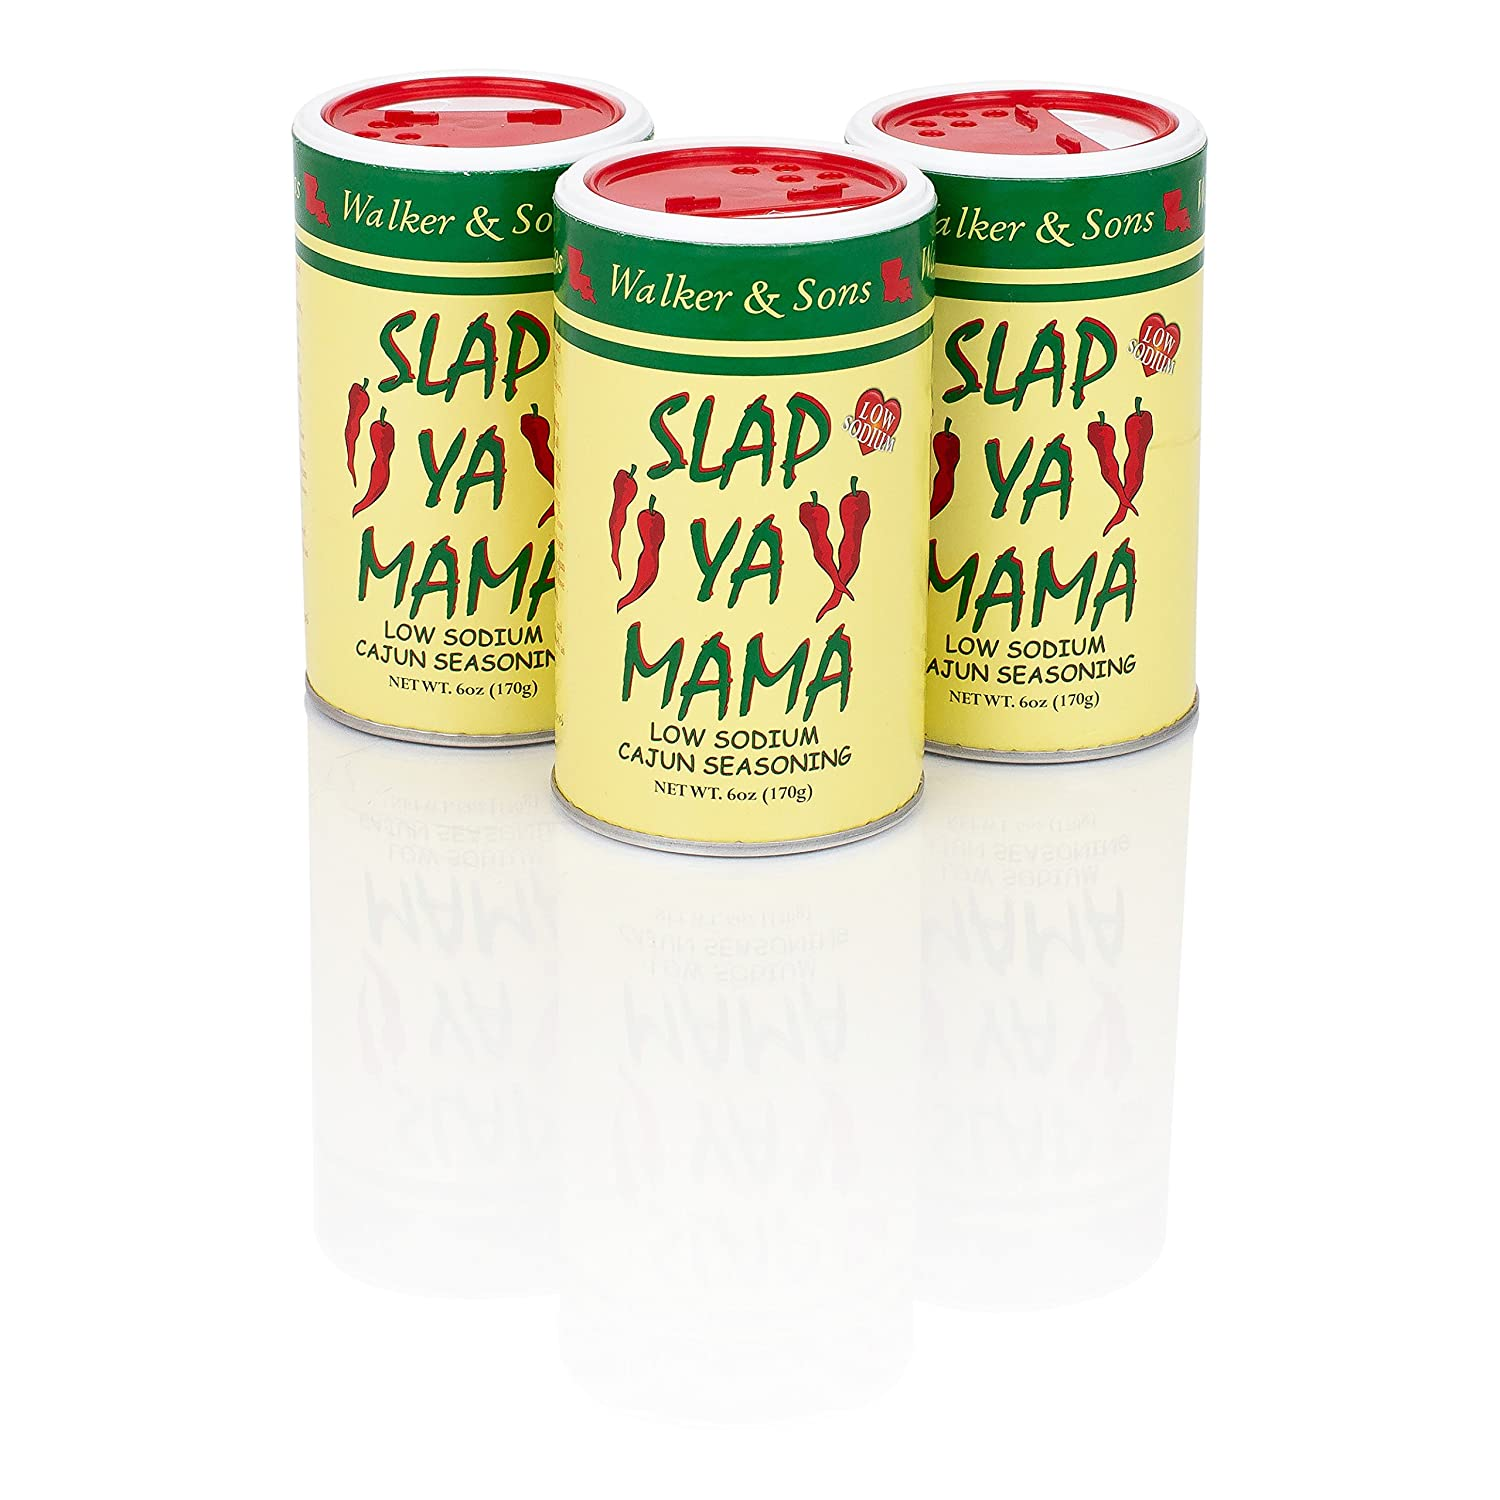 Slap Ya Mama All Natural Cajun Seasoning from Louisiana, Low Sodium Blend, MSG Free and Kosher, 6 Ounce Can, Pack of 3